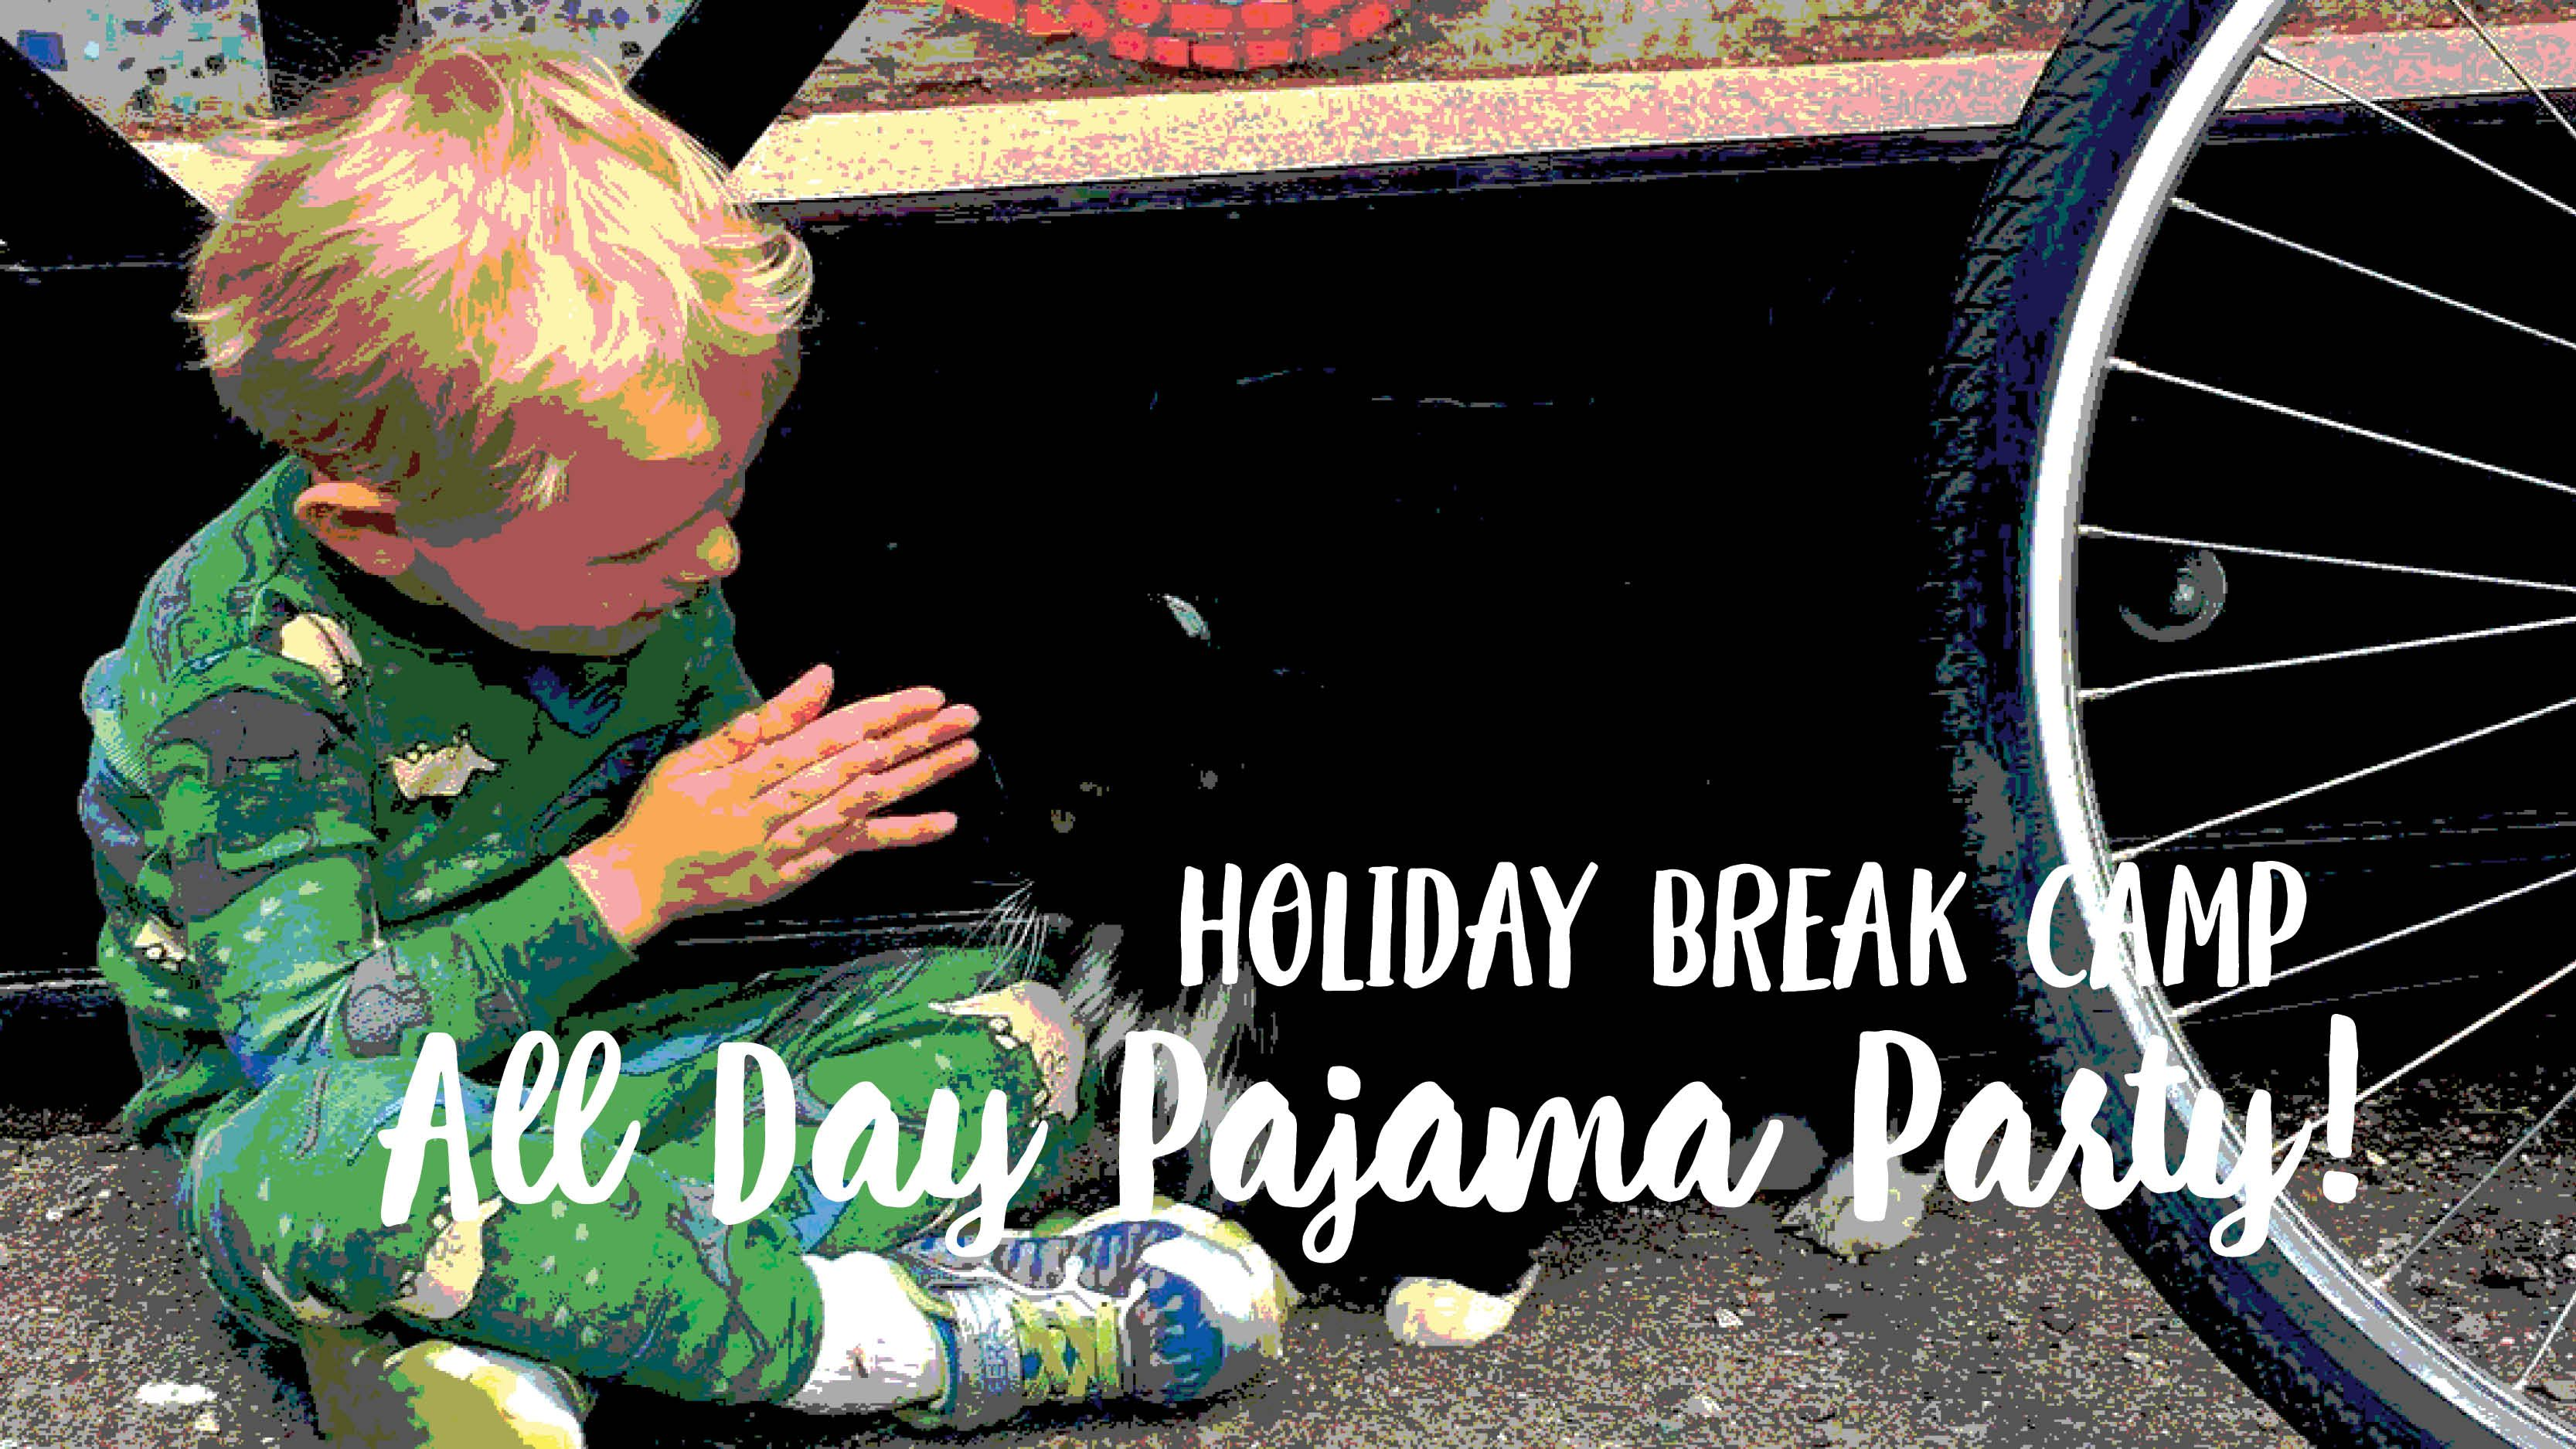 Holiday Break Camp: All Day Pajama Party!